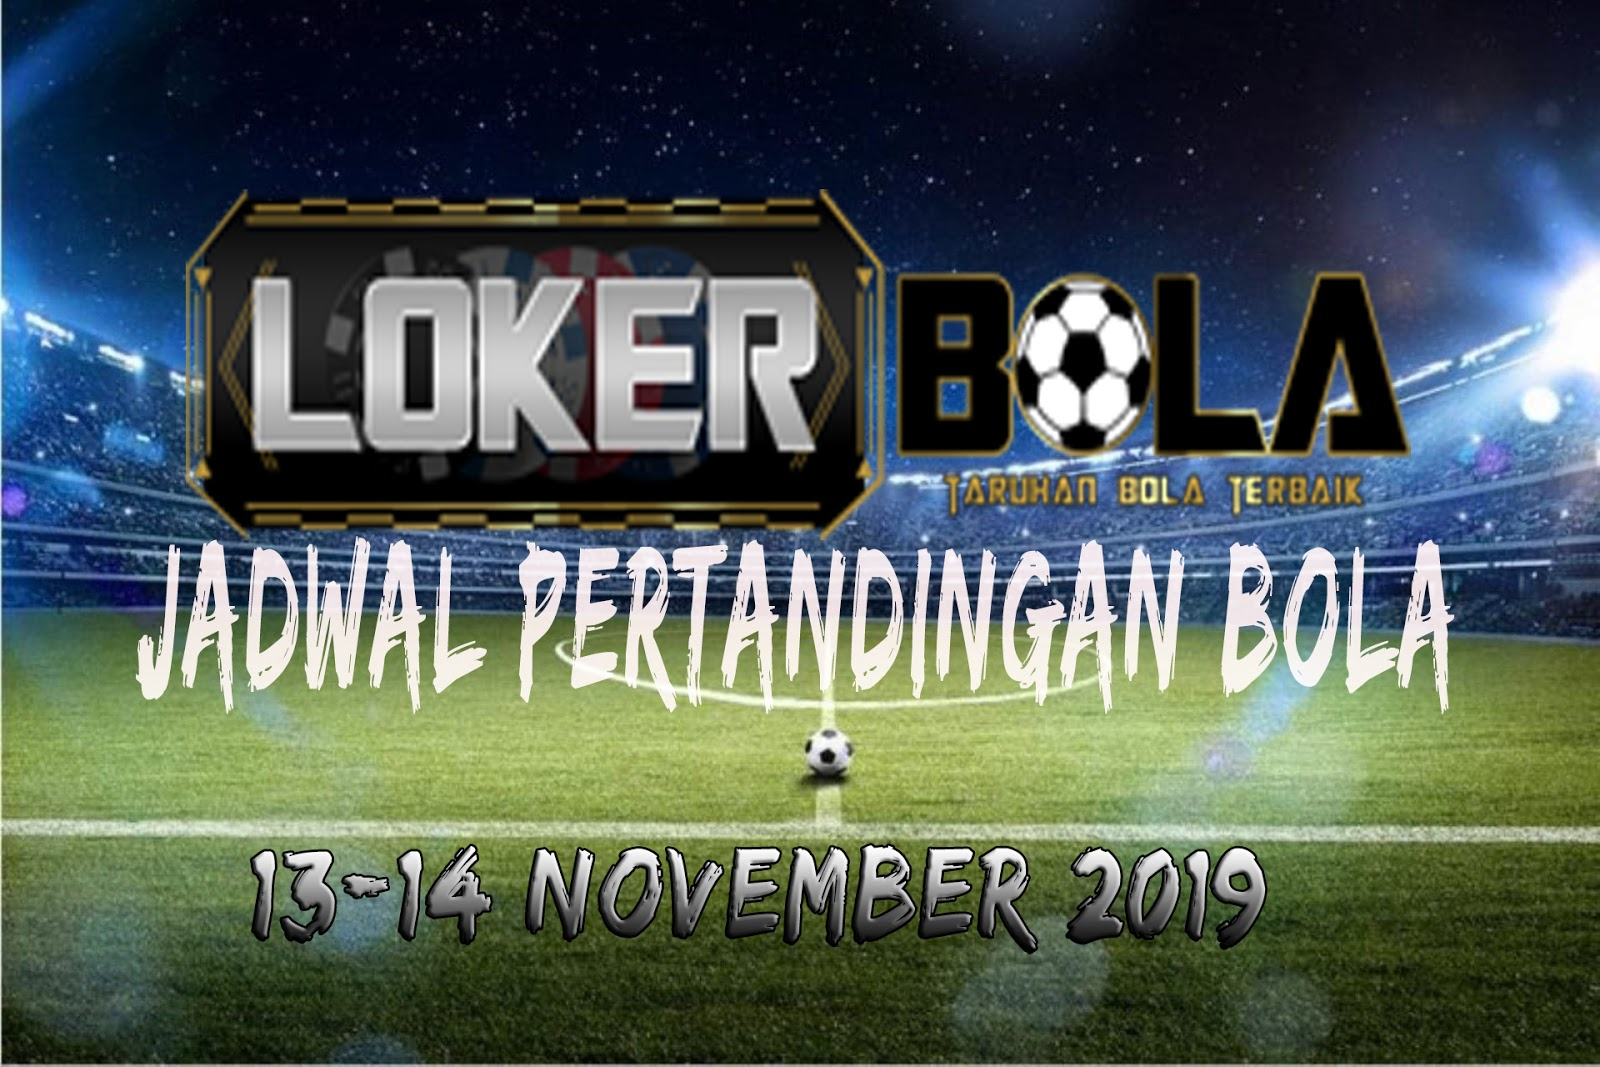 JADWAL PERTANDINGAN BOLA 13 – 14 NOVEMBER 2019